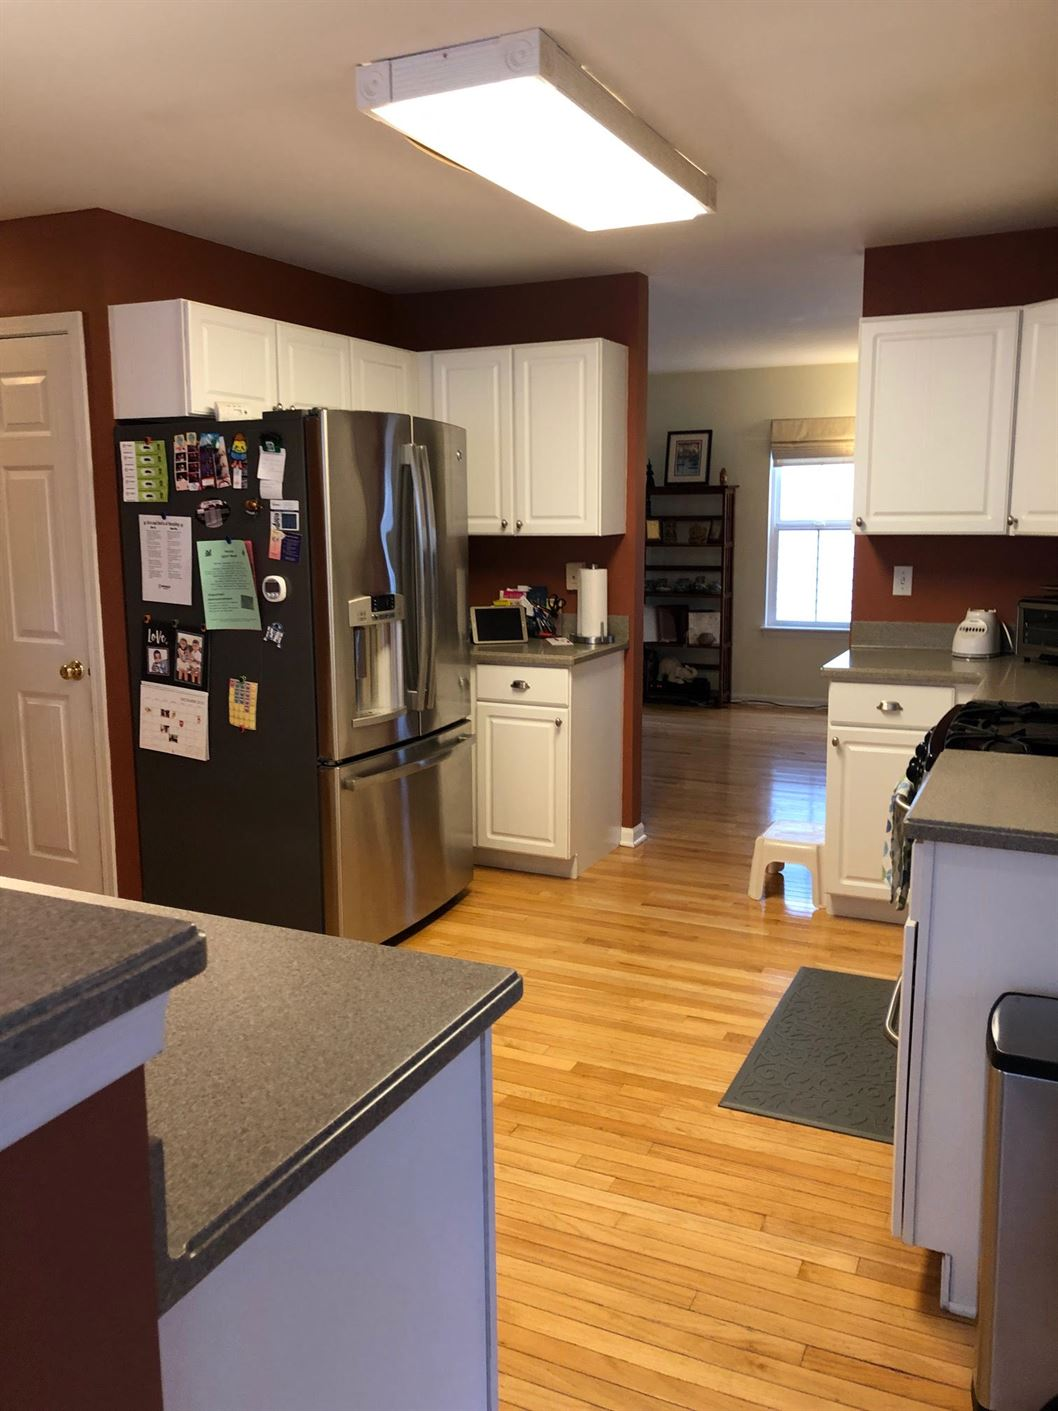 Downers Grove Kitchen Remodel - Before